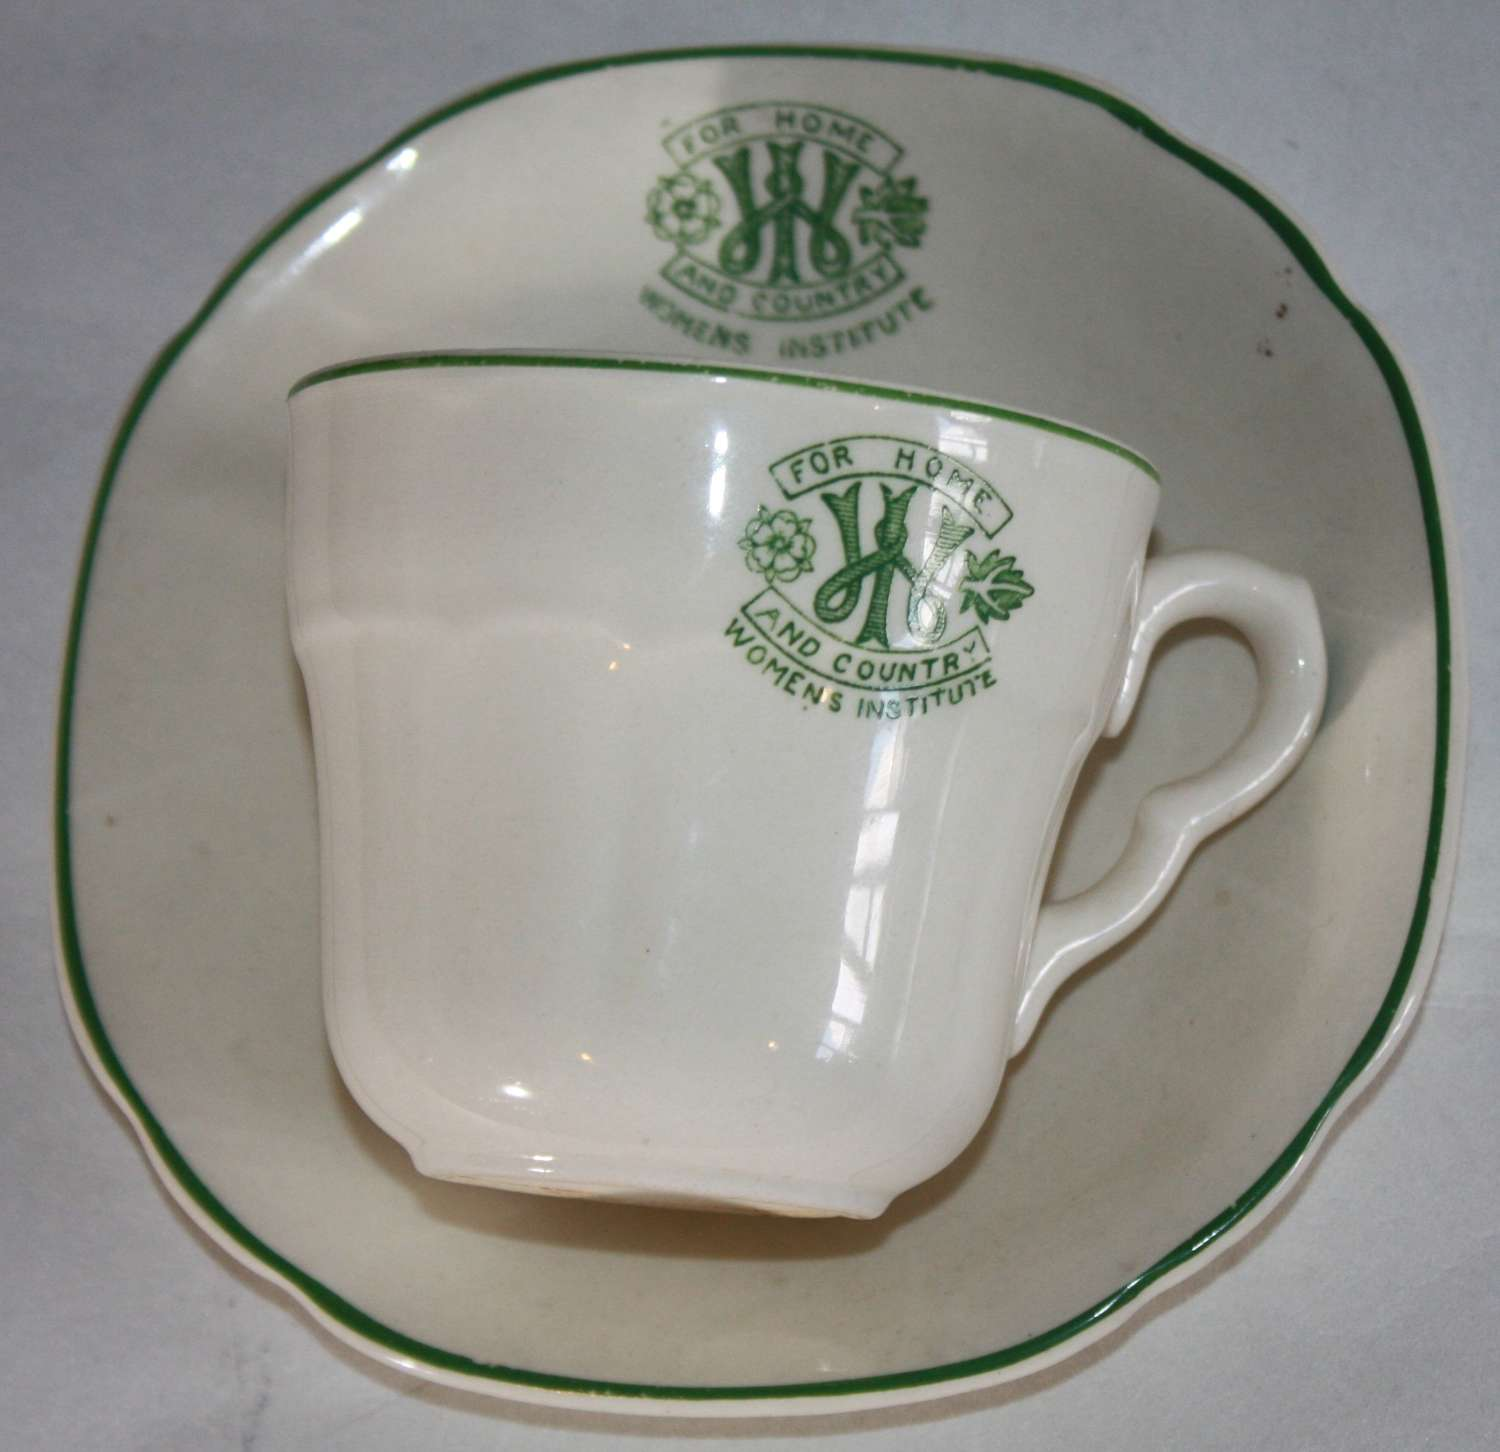 A WWII PERIOD WOMENS INSTITUTE TEA CUP AND SAUCER